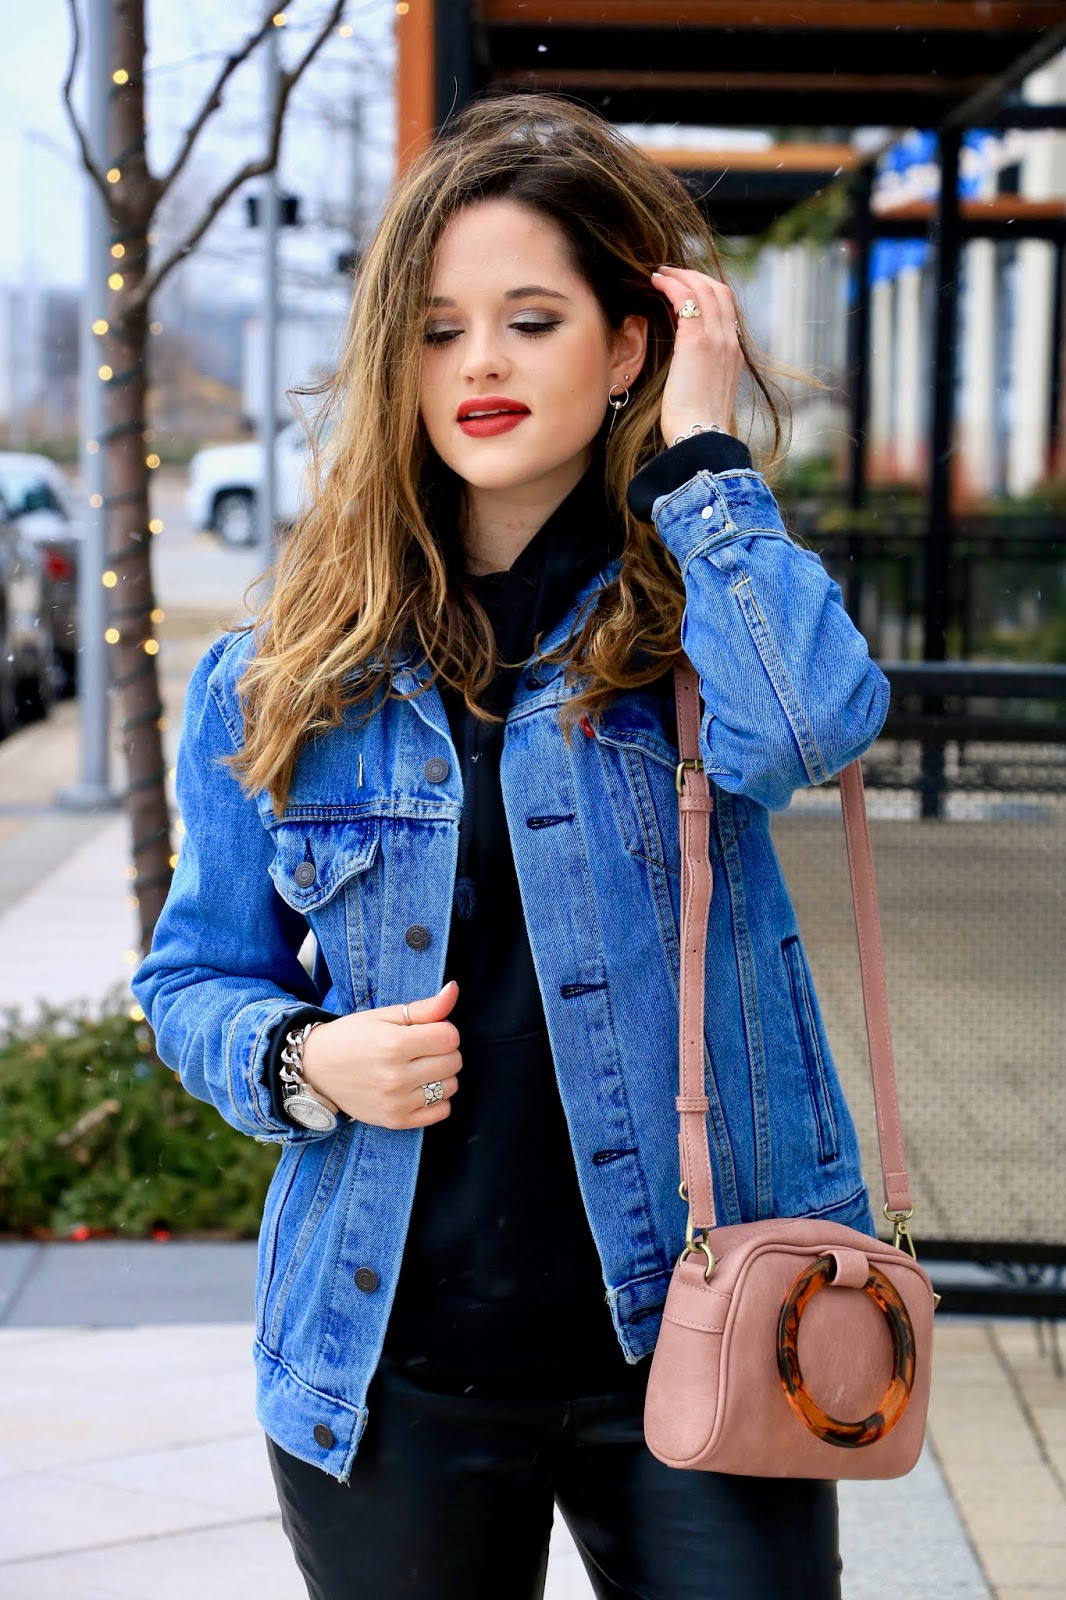 Nyc fashion blogger Kathleen Harper's winter layers outfit